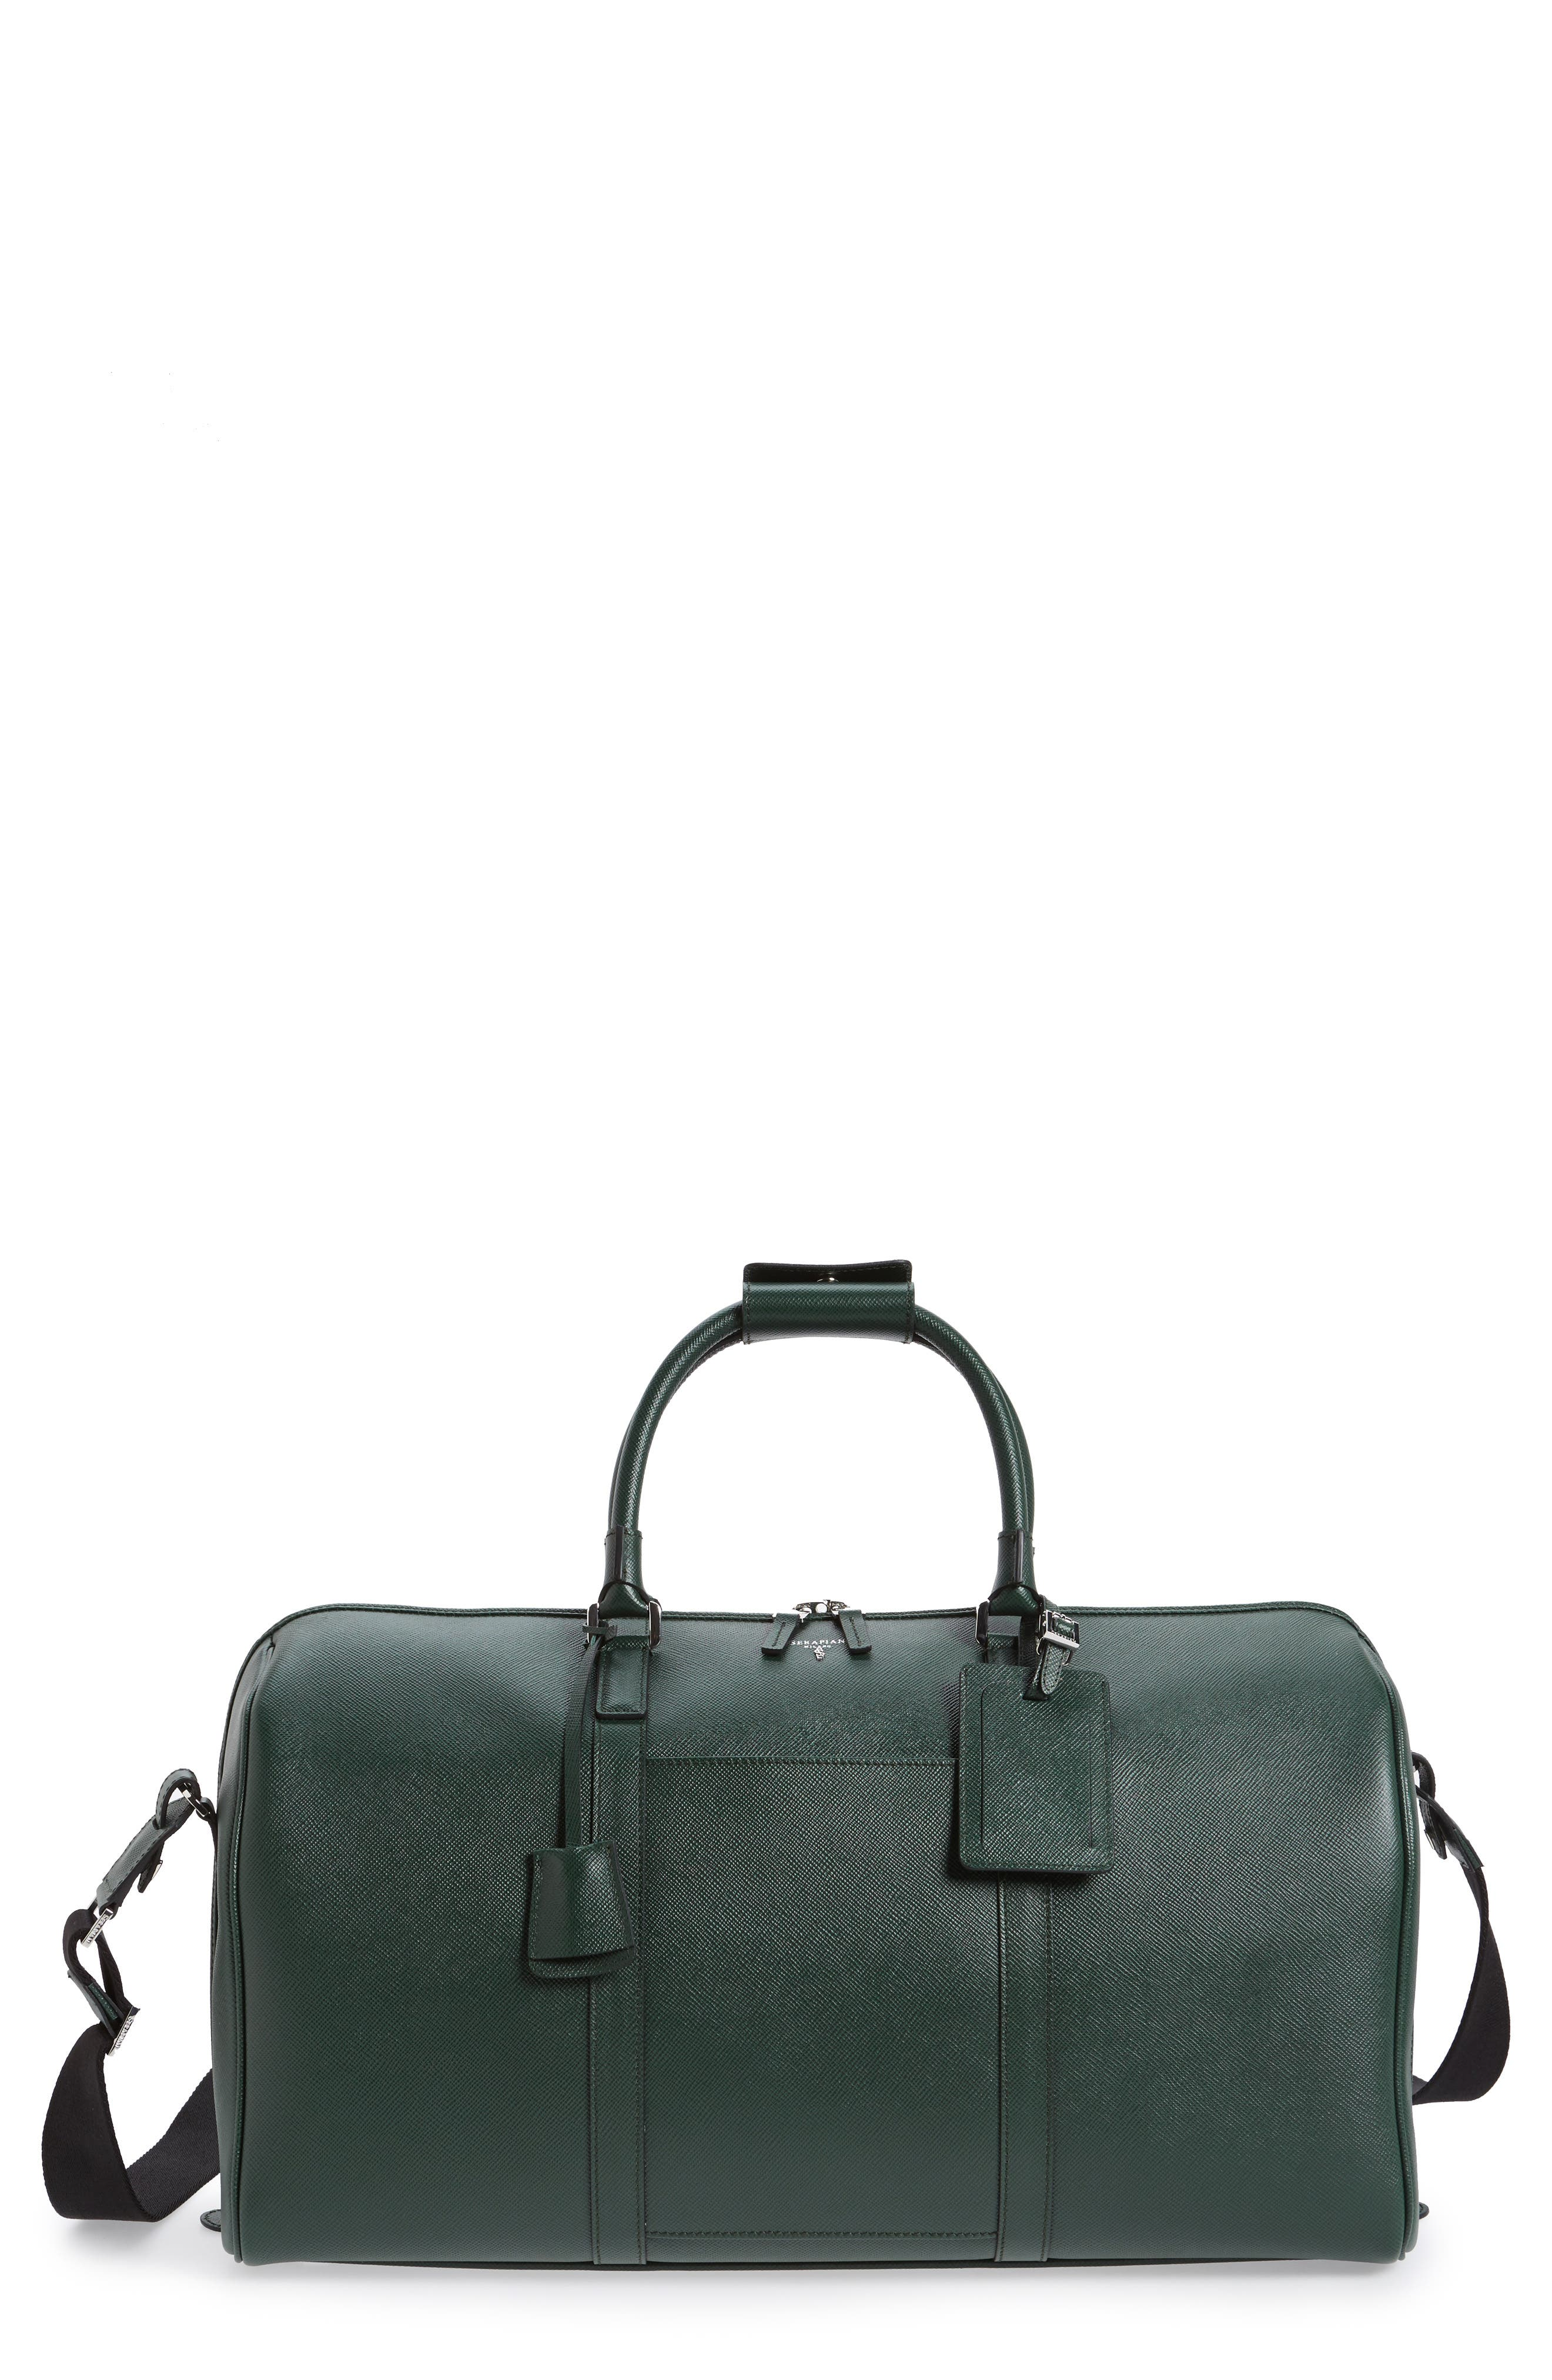 Small Evolution Leather Duffel Bag,                             Main thumbnail 1, color,                             Forest Green